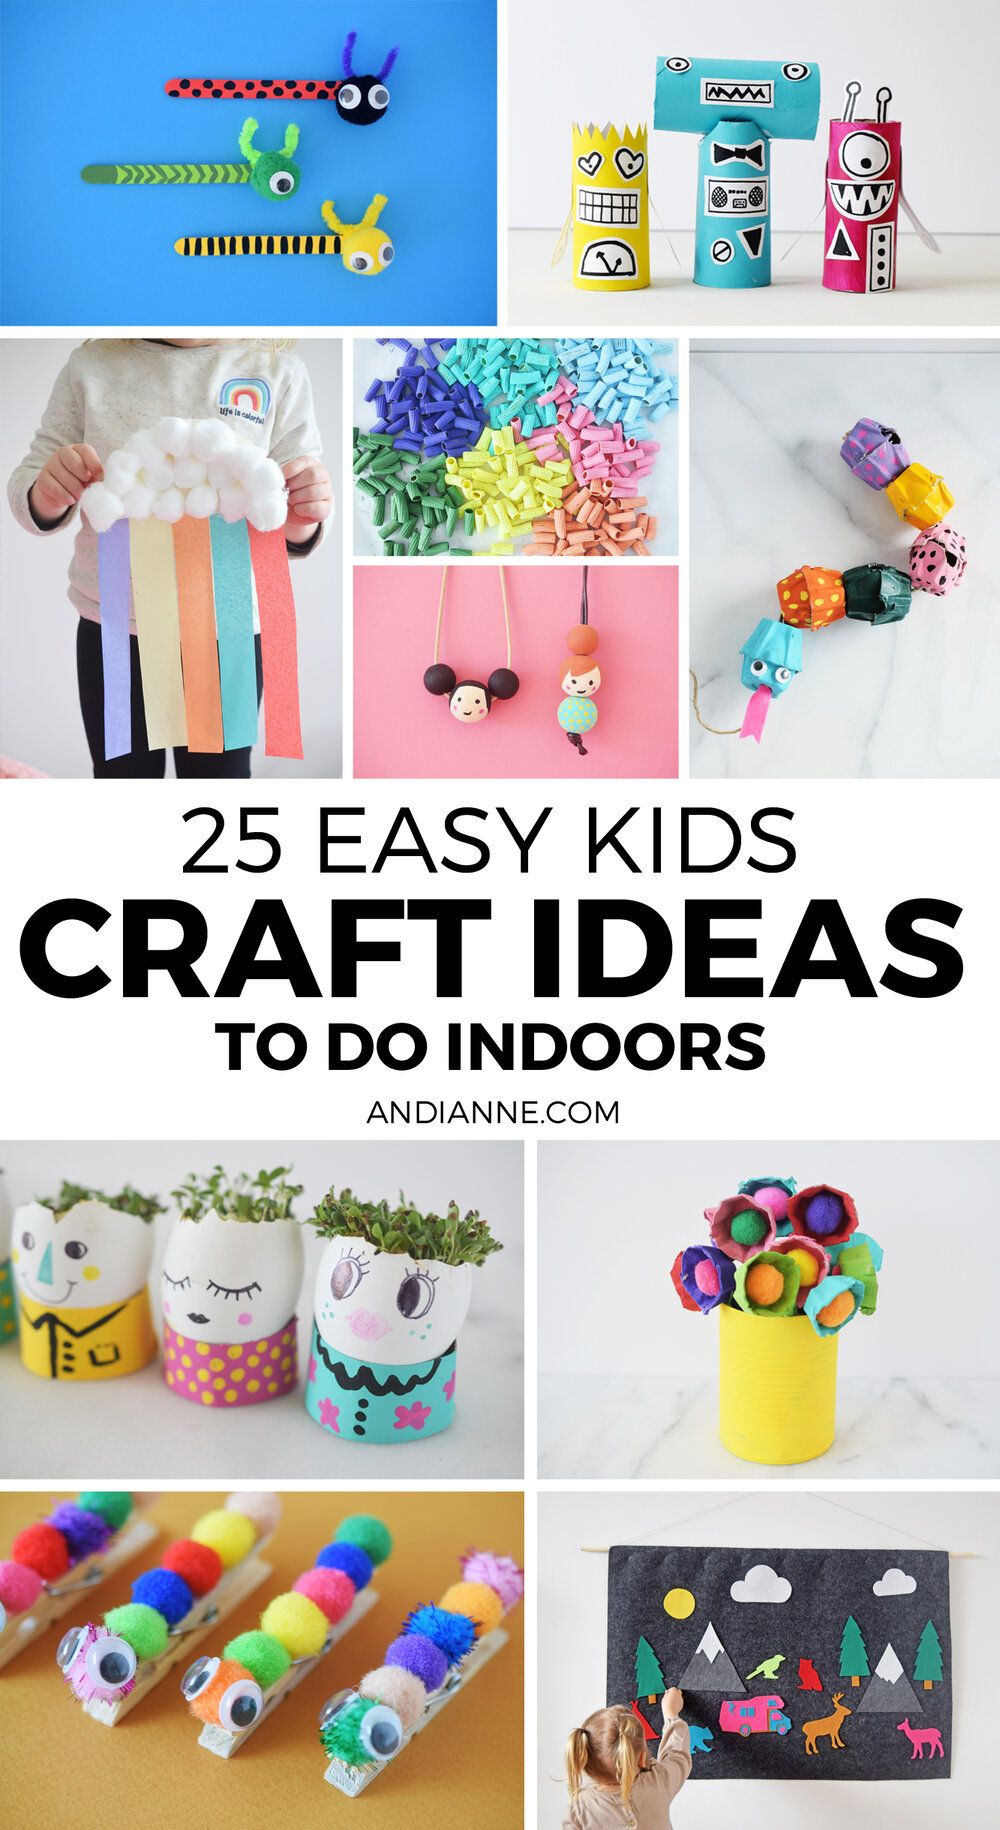 25 Easy Kids Crafts To Make At Home Andianne In 2020 Easy Crafts For Kids Crafts For Kids Summer Crafts For Kids